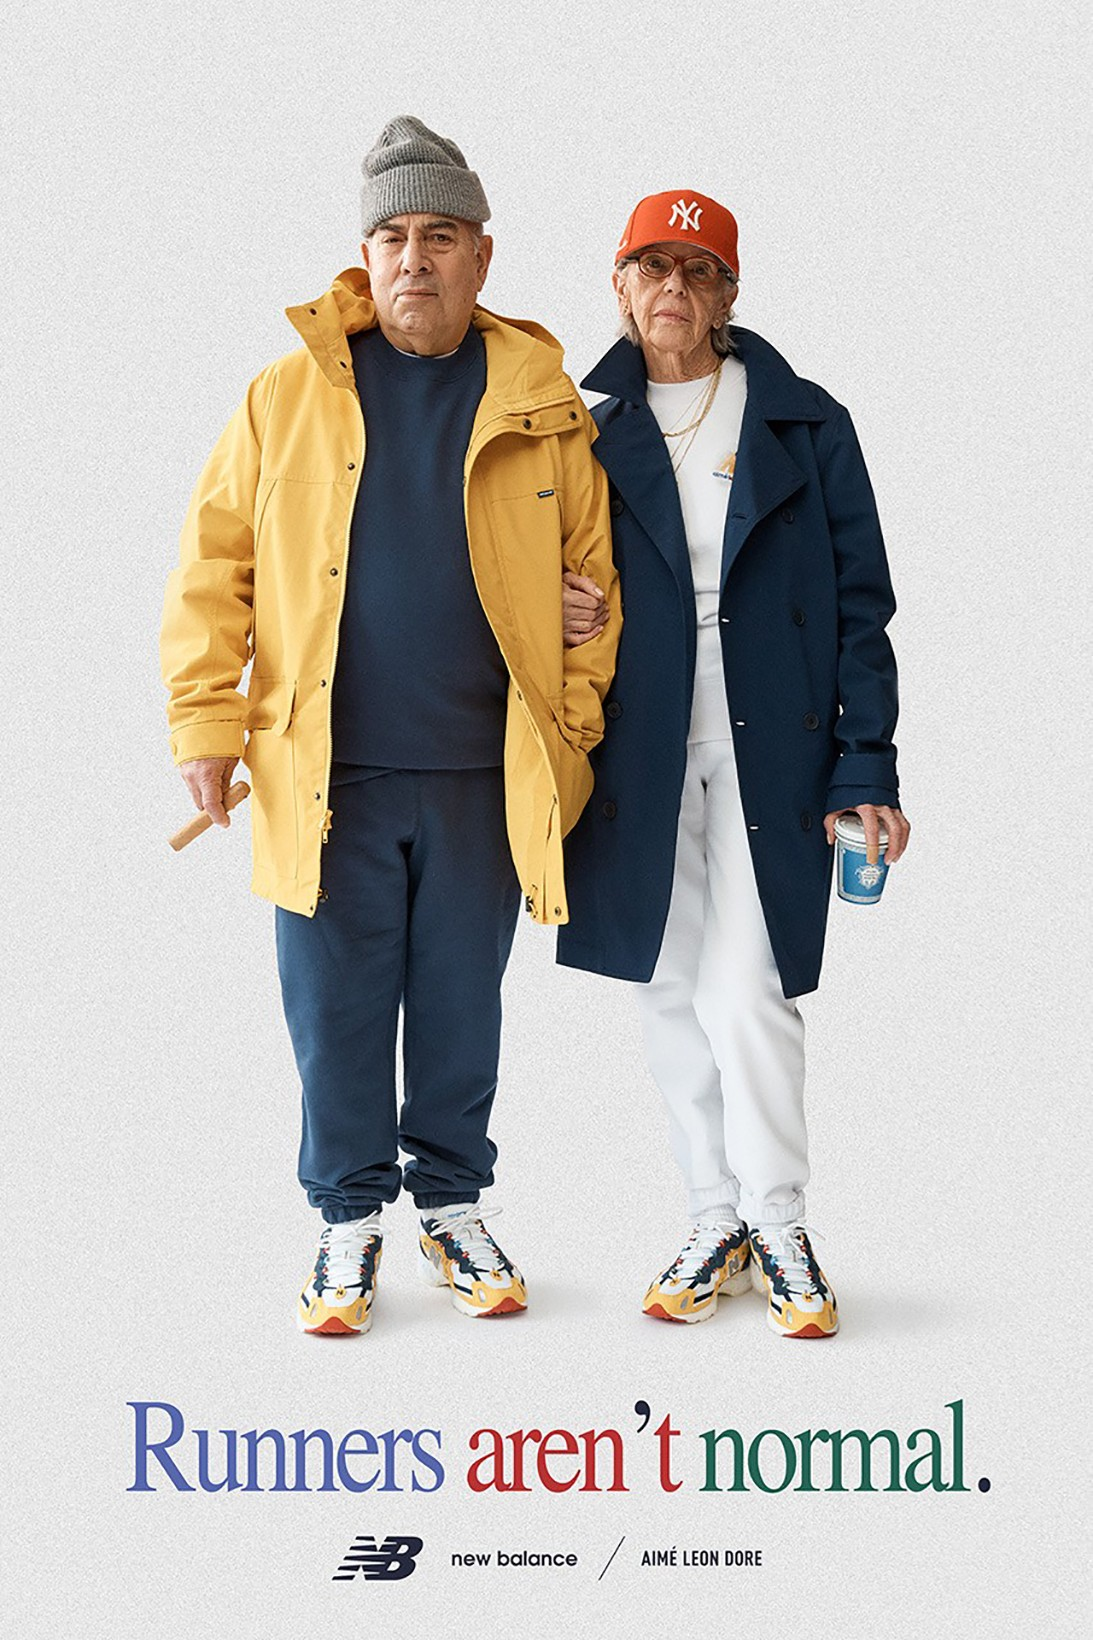 aime Leon dore new balance collaboration spring summer apparel 827 sneakers